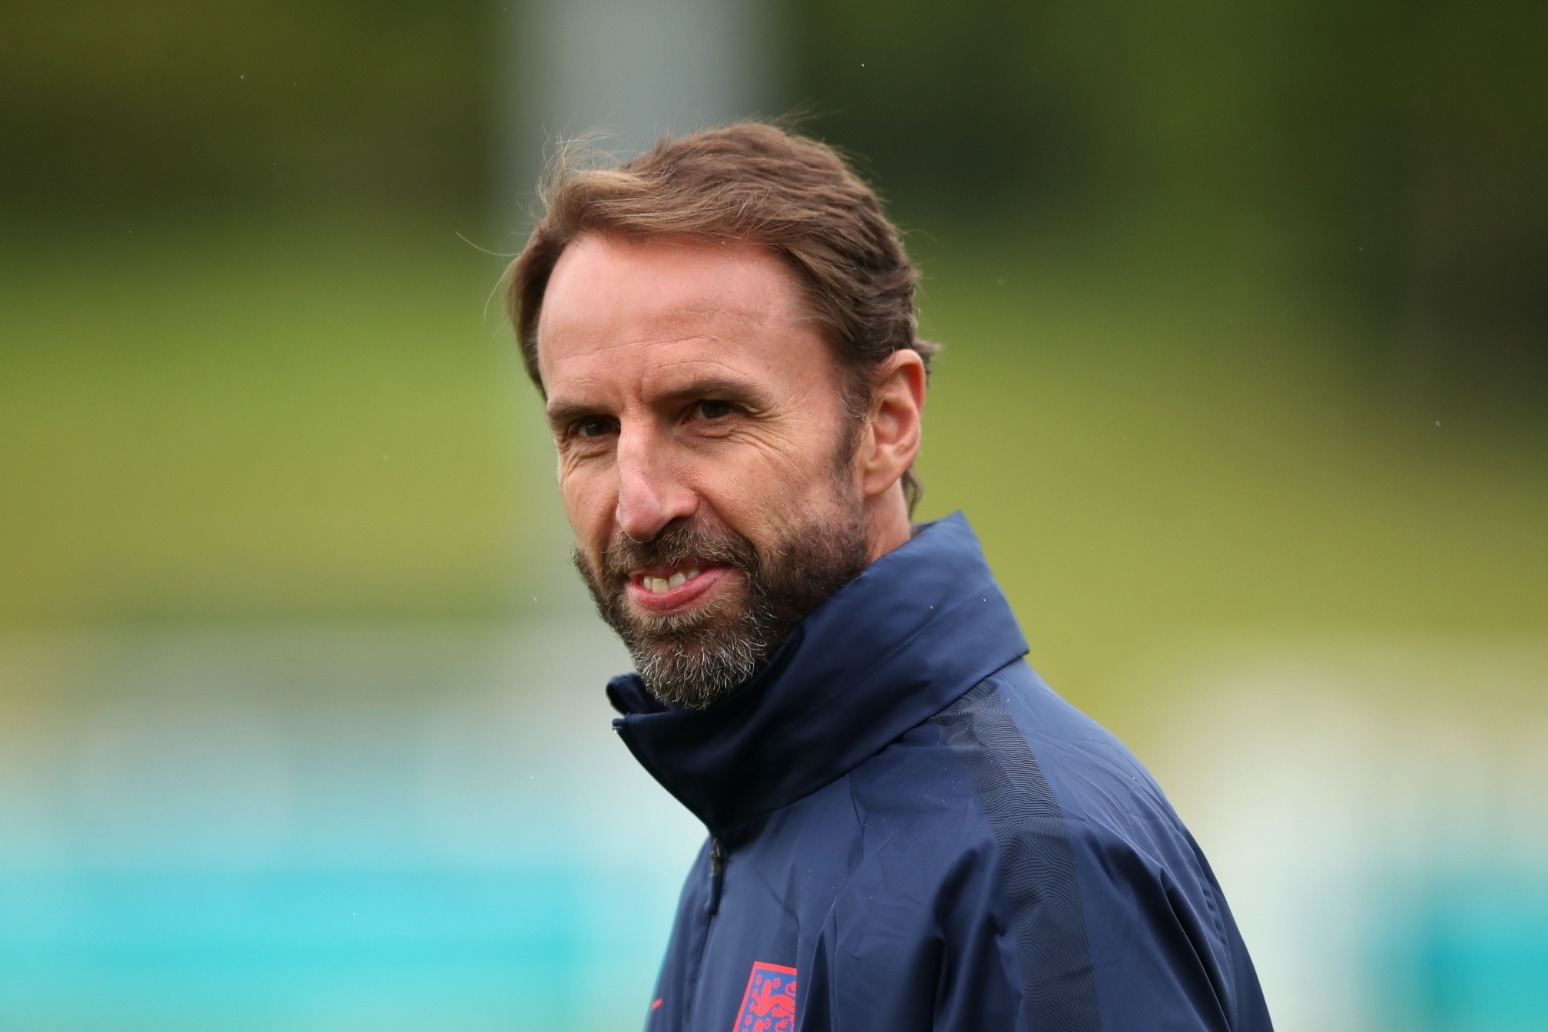 Gareth Southgate says his Euro 96 penalty miss is \'irrelevant\' ahead of England vs Germany tonight